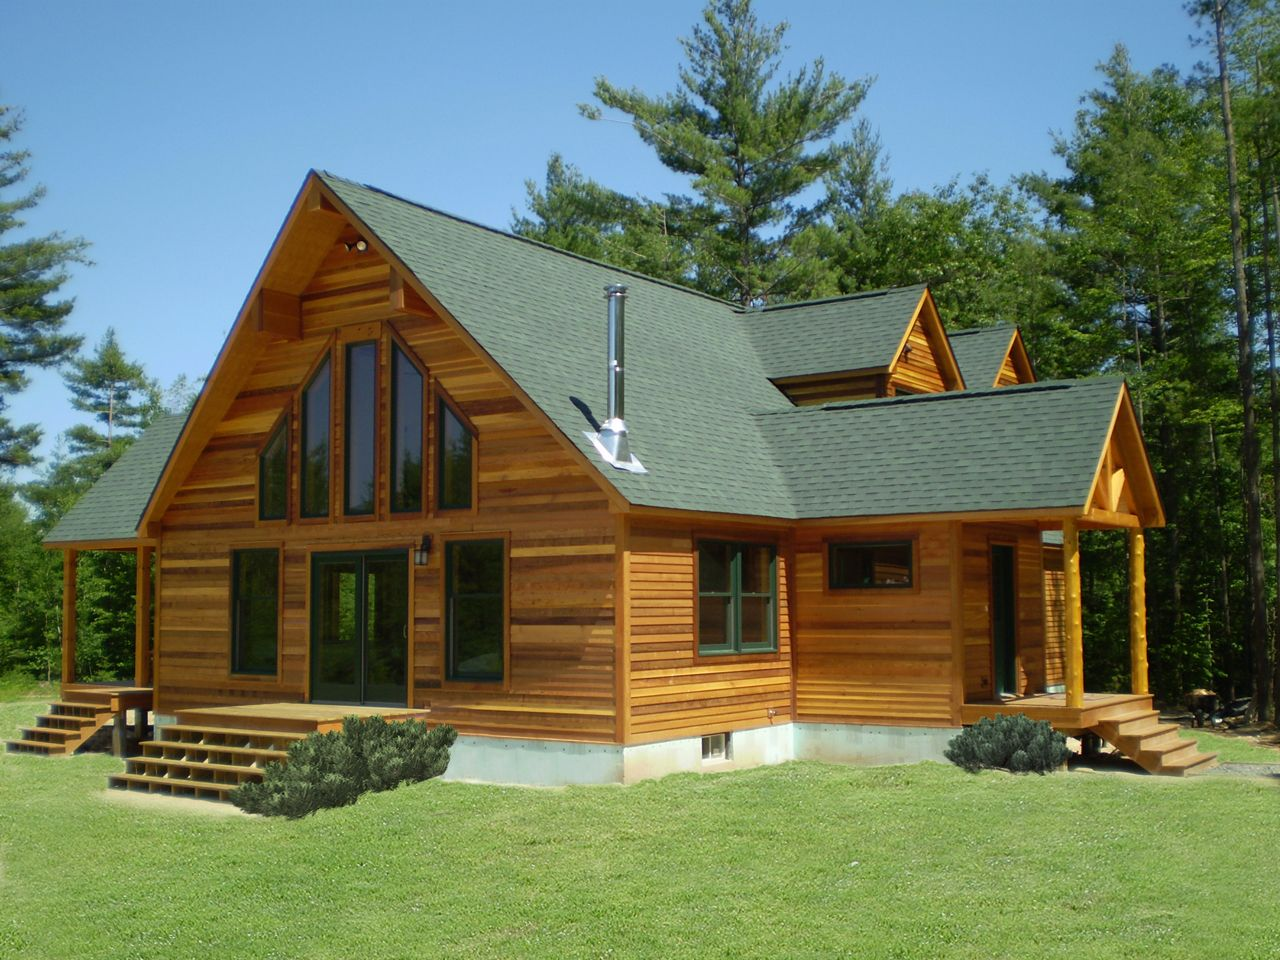 Best Ideas About Modular Log Homes On Pinterest Cabin Kit Design A Modular Home